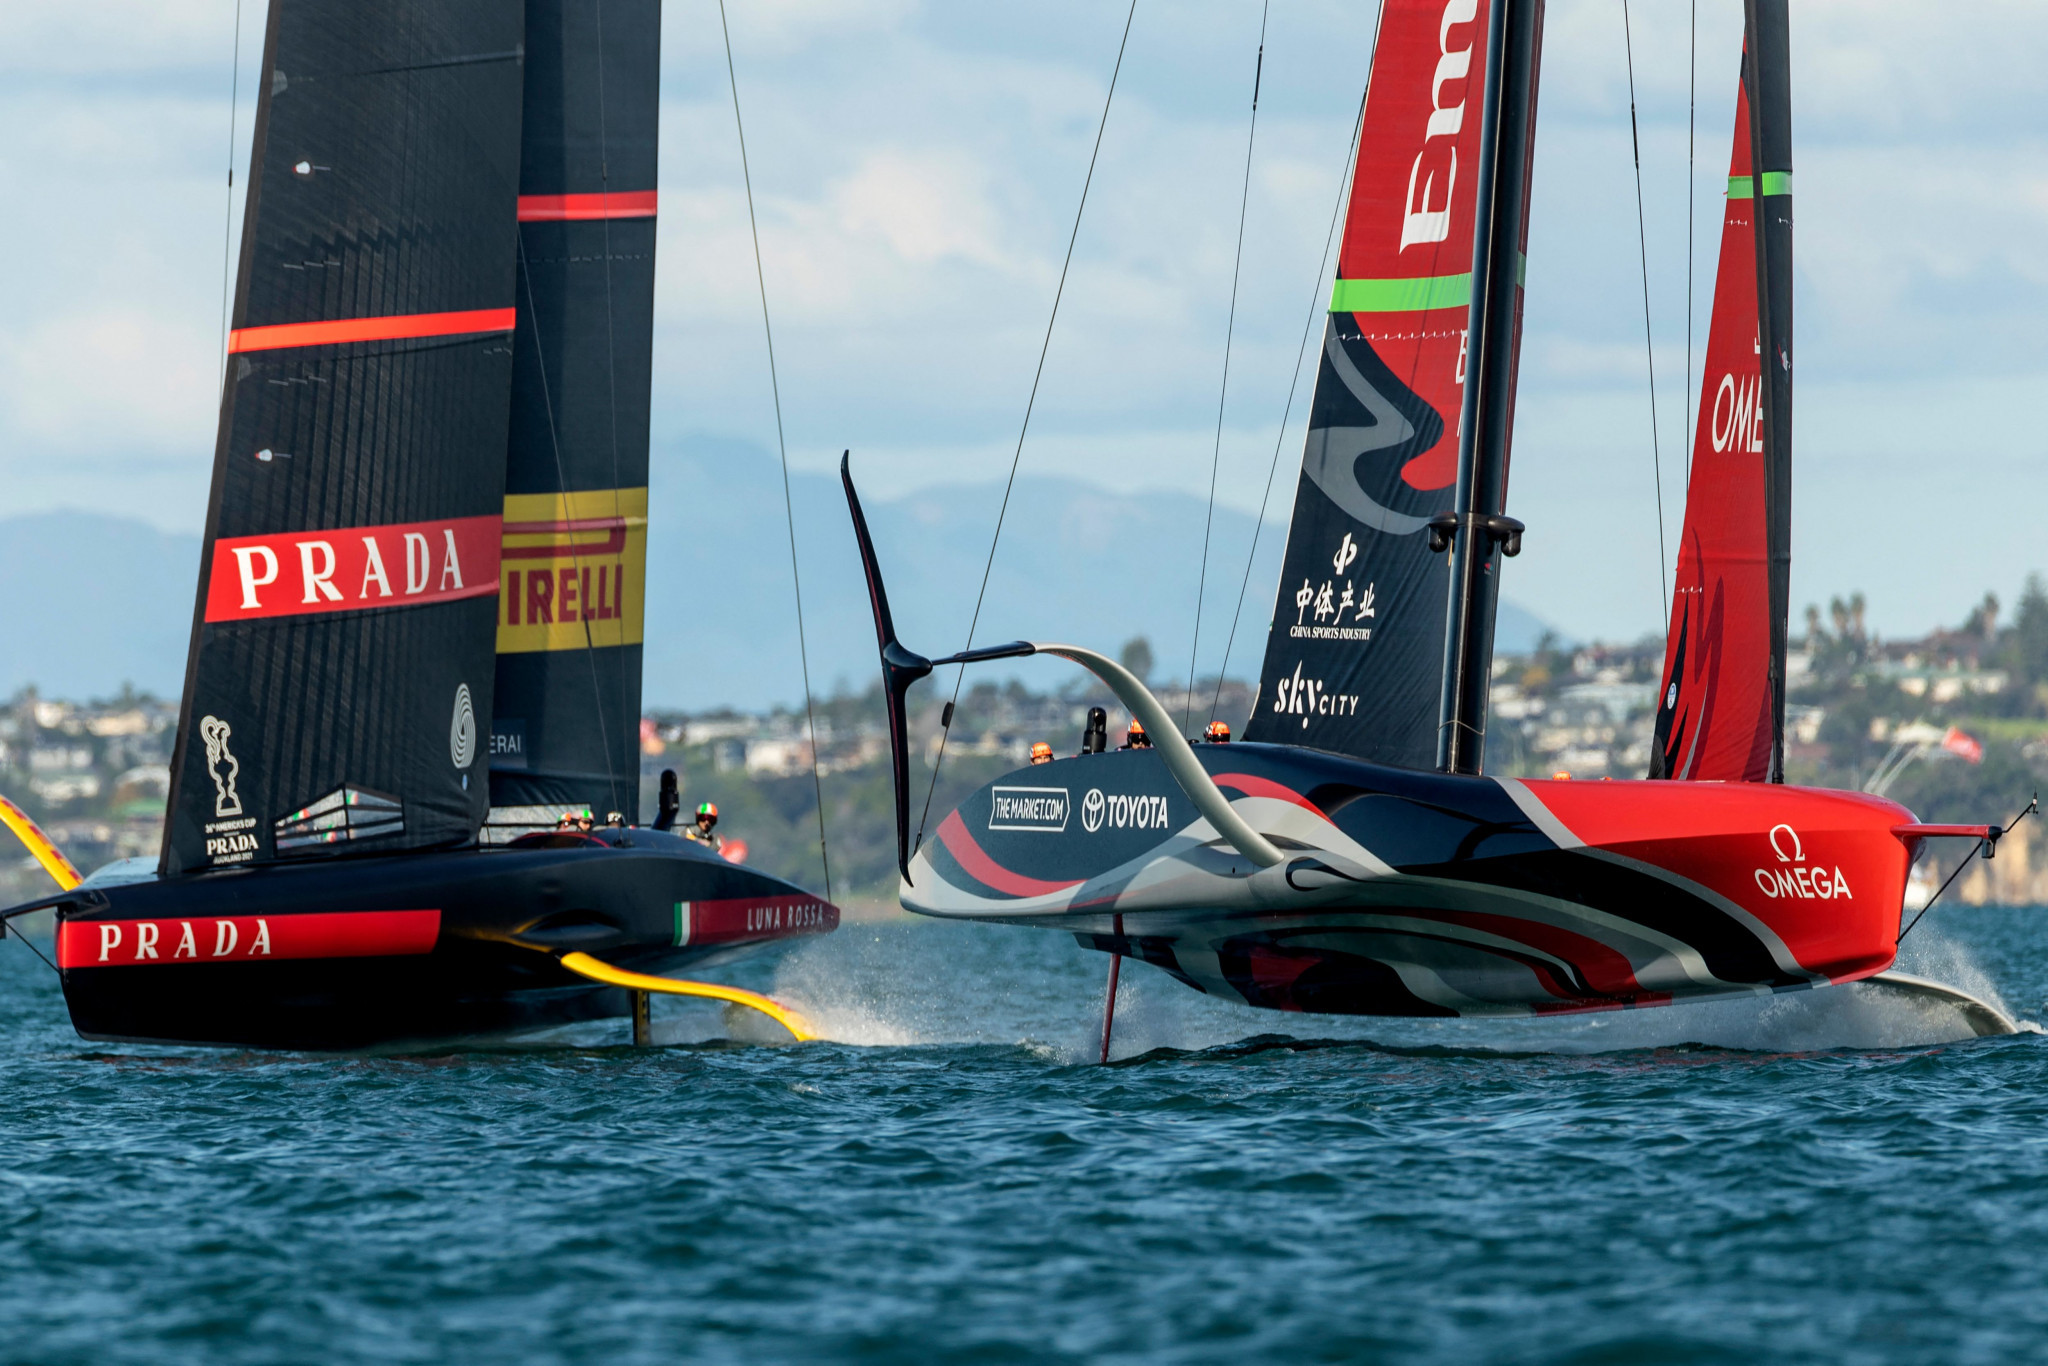 No America's Cup host picked as selection process extended after late Auckland bid